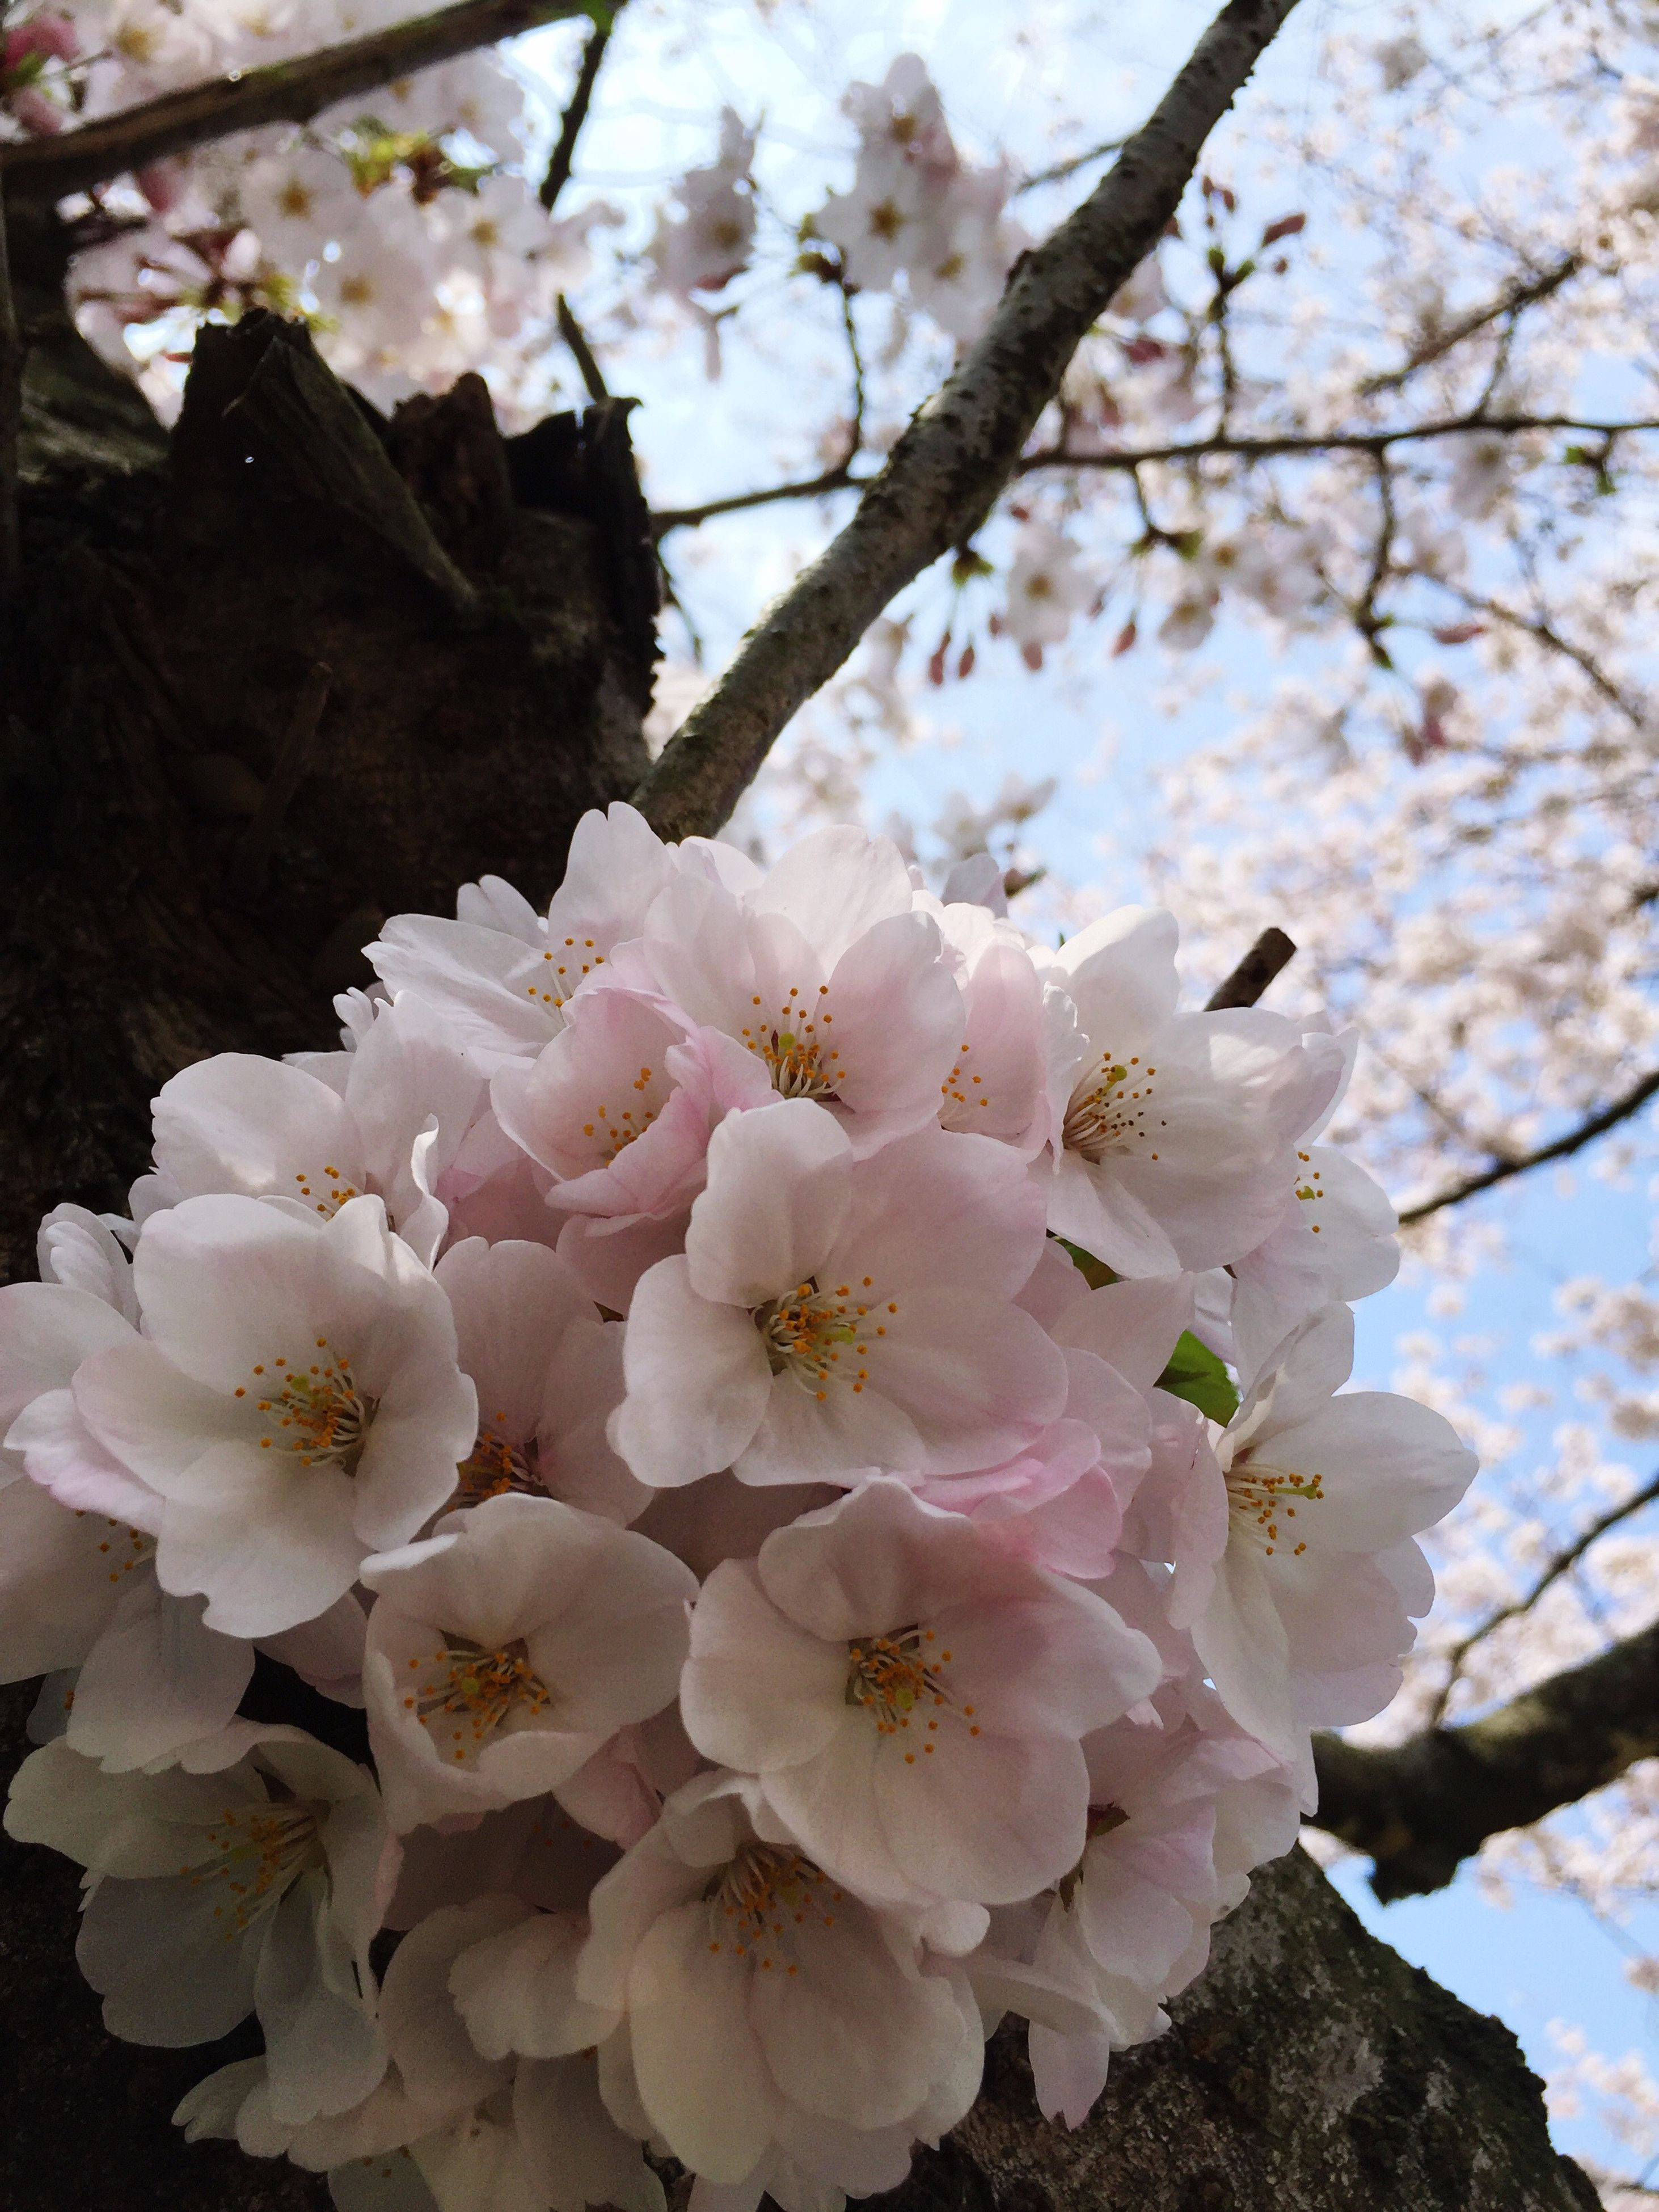 flower, freshness, branch, tree, growth, cherry blossom, fragility, beauty in nature, cherry tree, blossom, nature, fruit tree, low angle view, petal, white color, close-up, in bloom, springtime, apple blossom, orchard